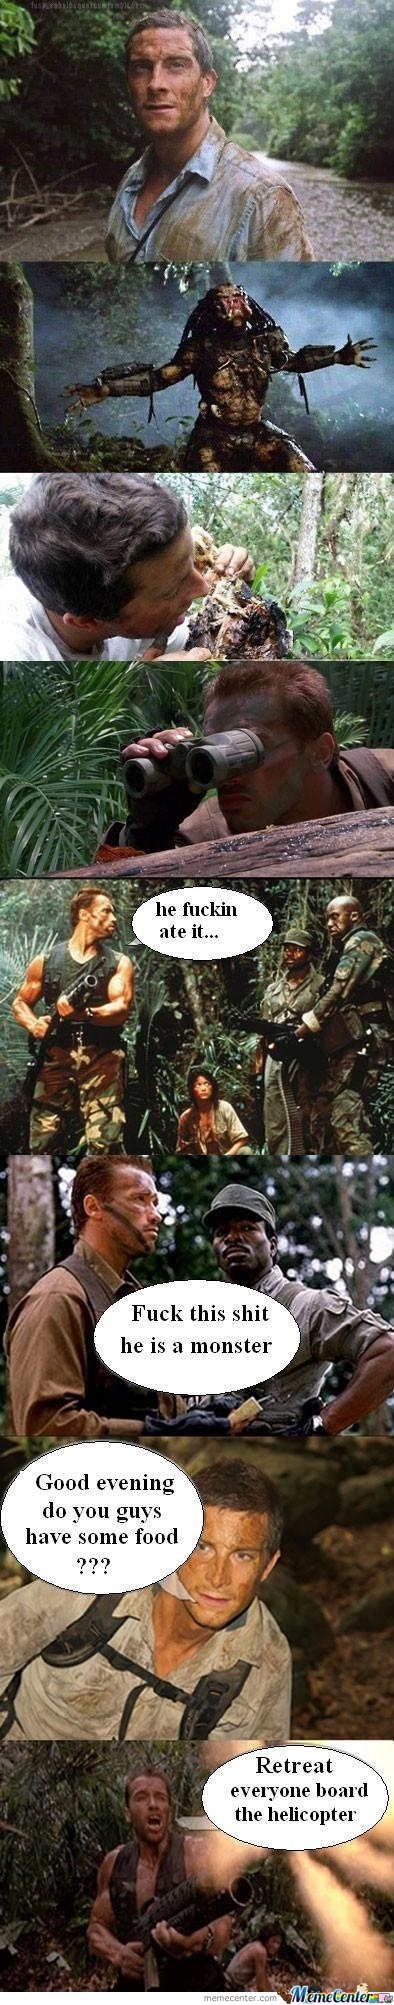 Predator The Director's Cut